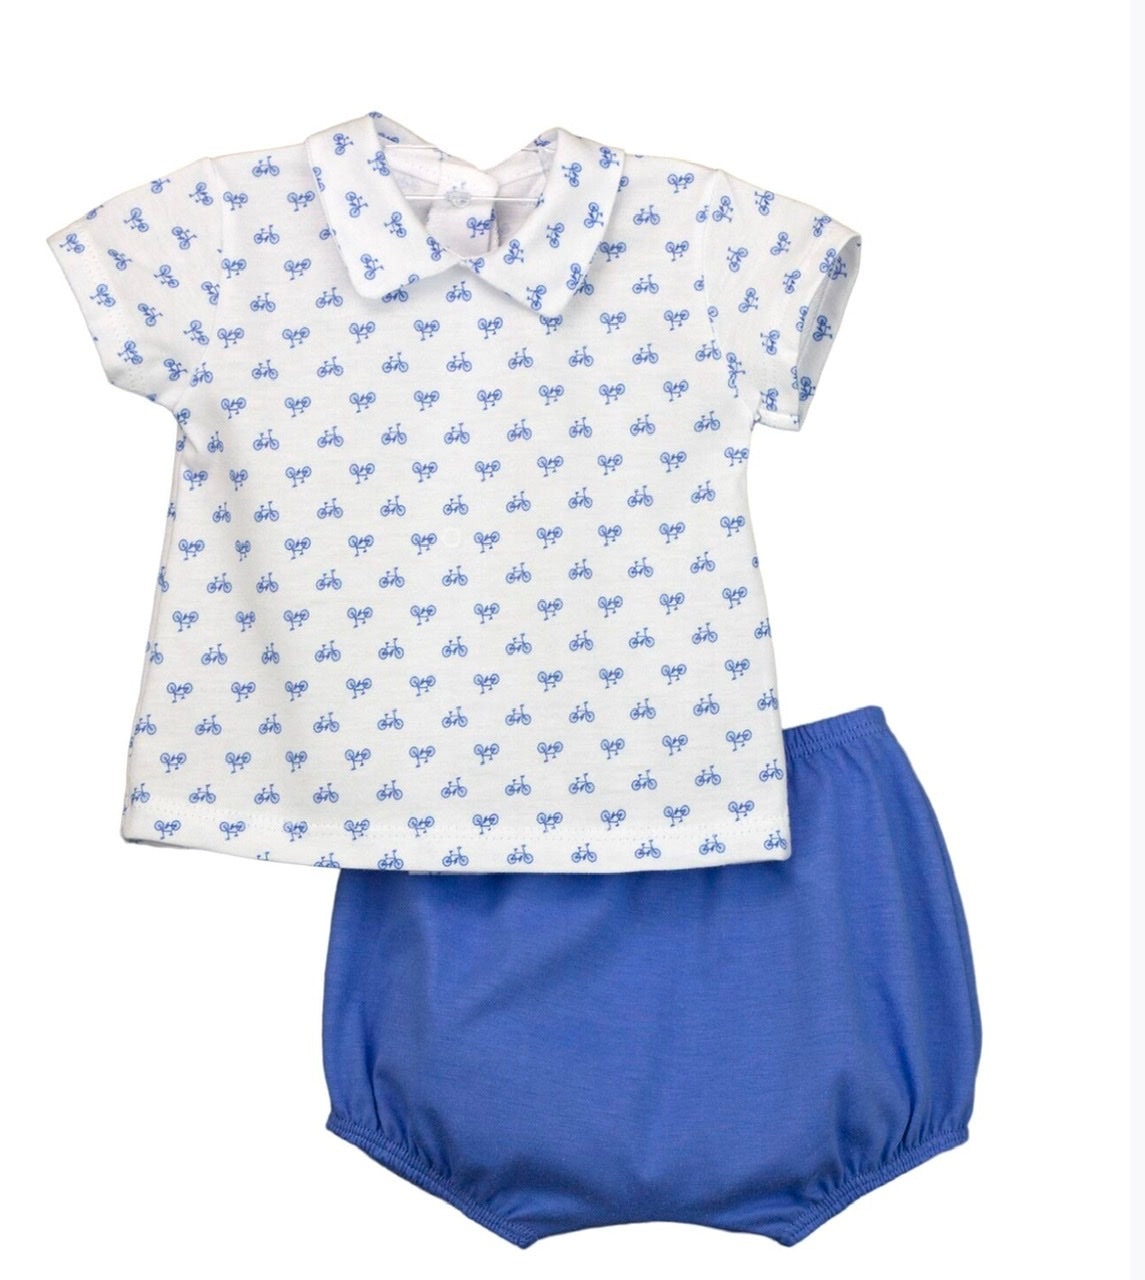 Rapife Baby Top & Shorts Set Bicycle print SALE